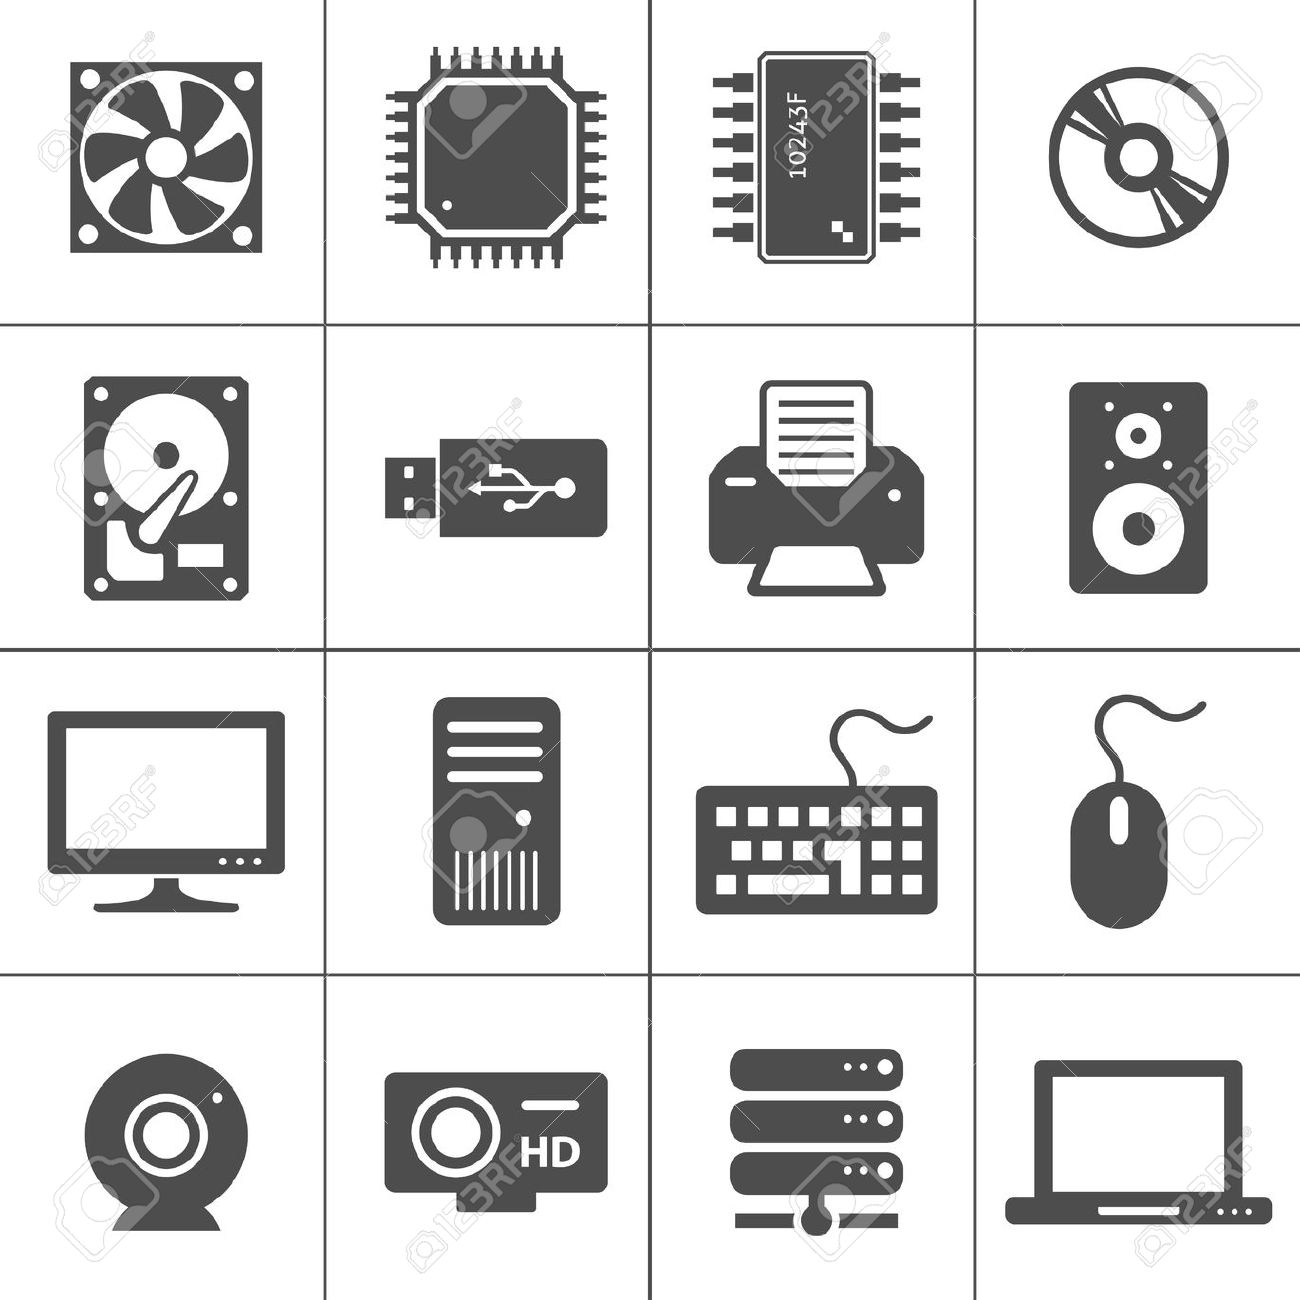 15363997-Computer-Hardware-Icons-PC-Components-Each-icon-is-a-single